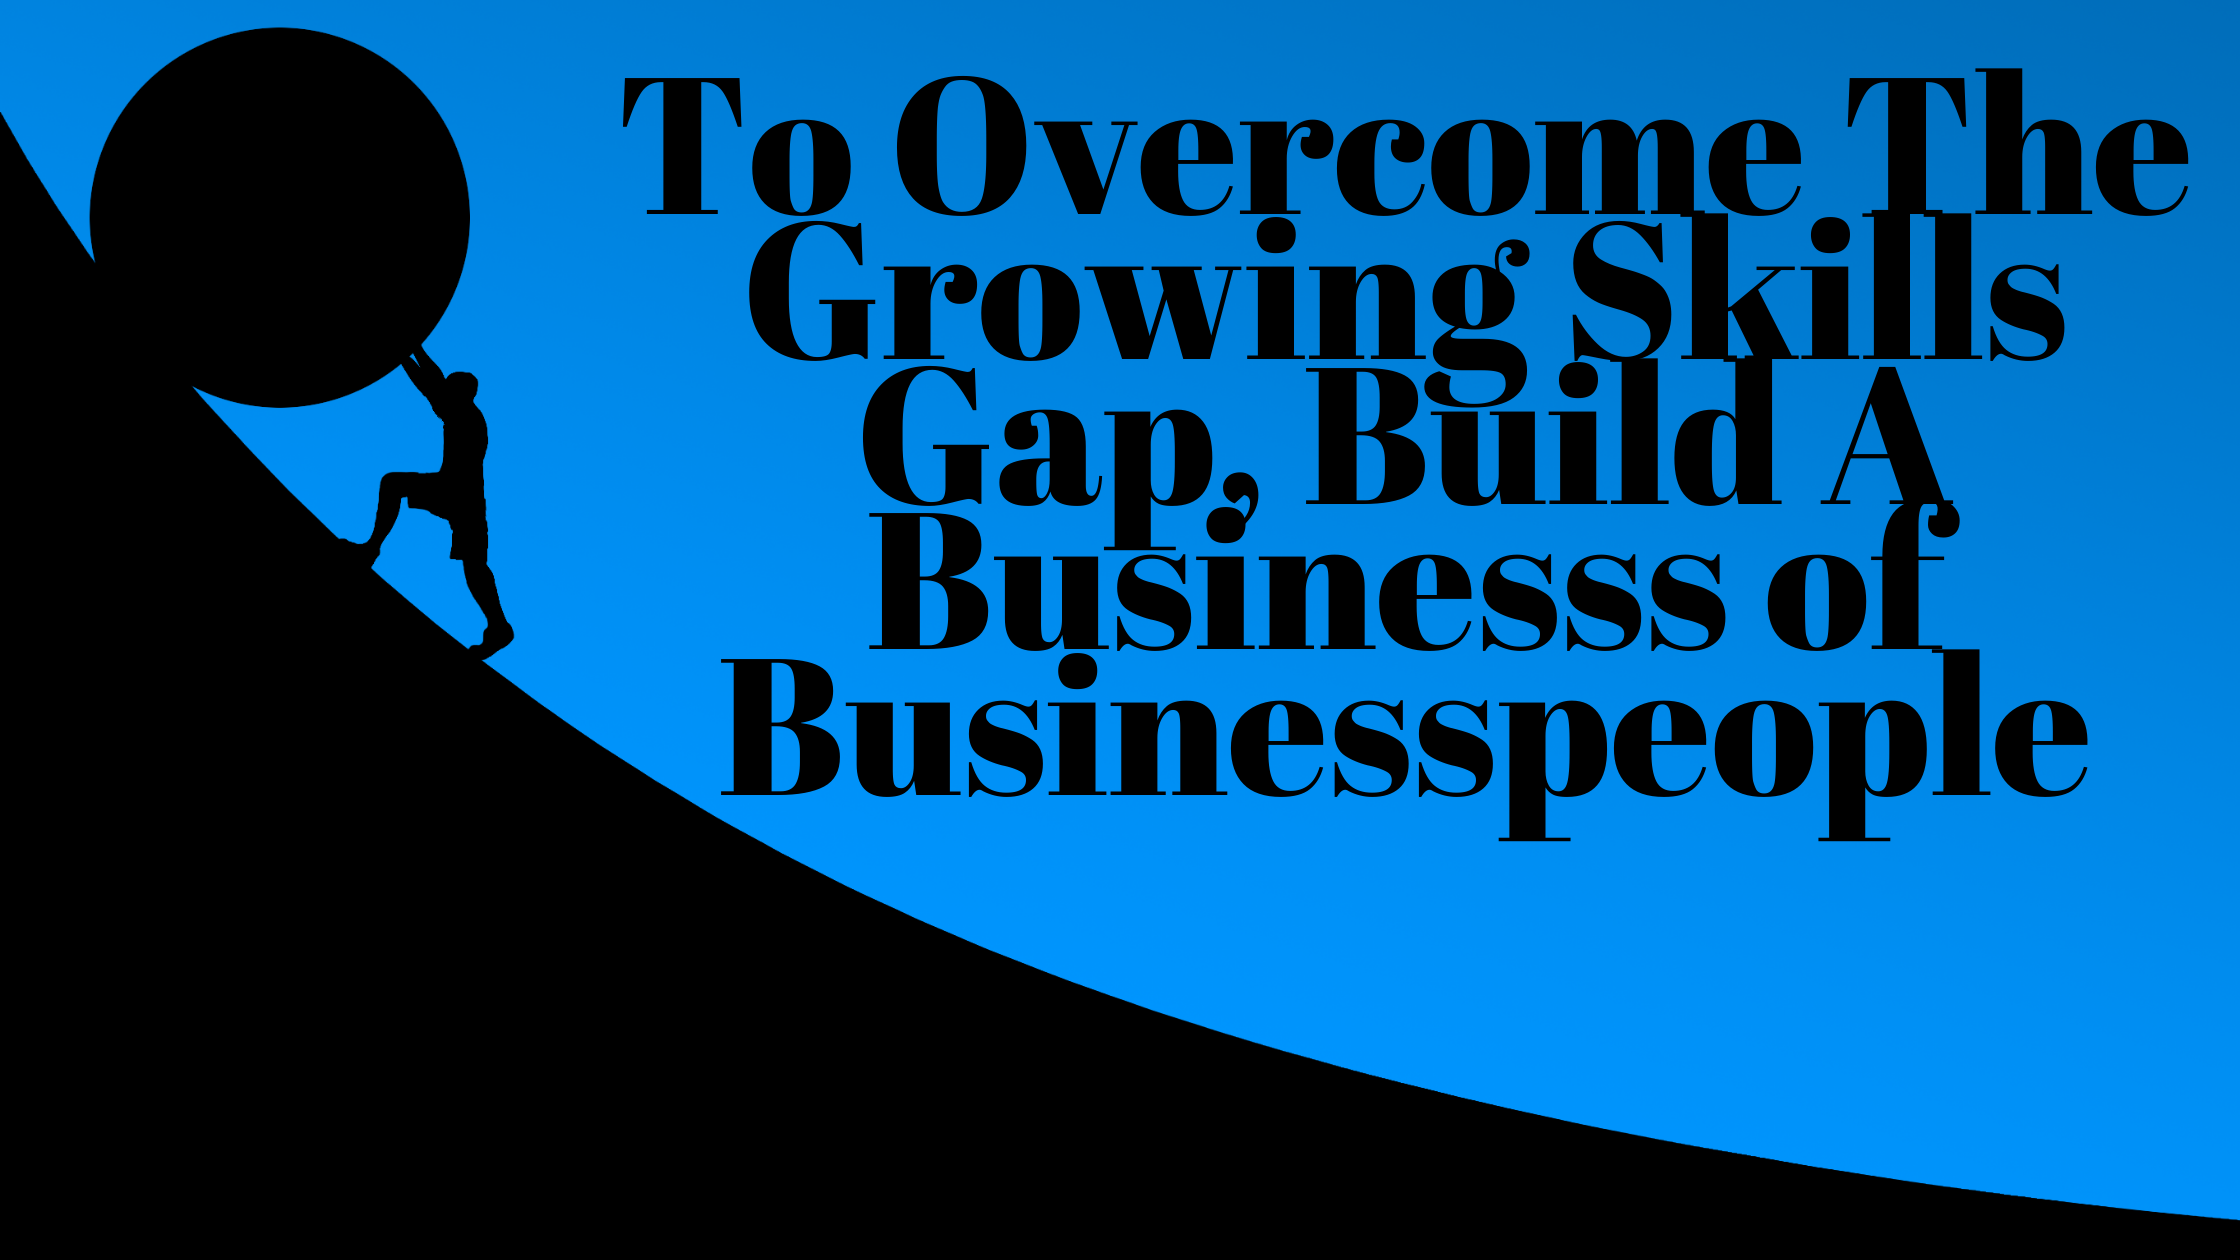 To Overcome The Growing Skills Gap, Build A Business of Businesspeople